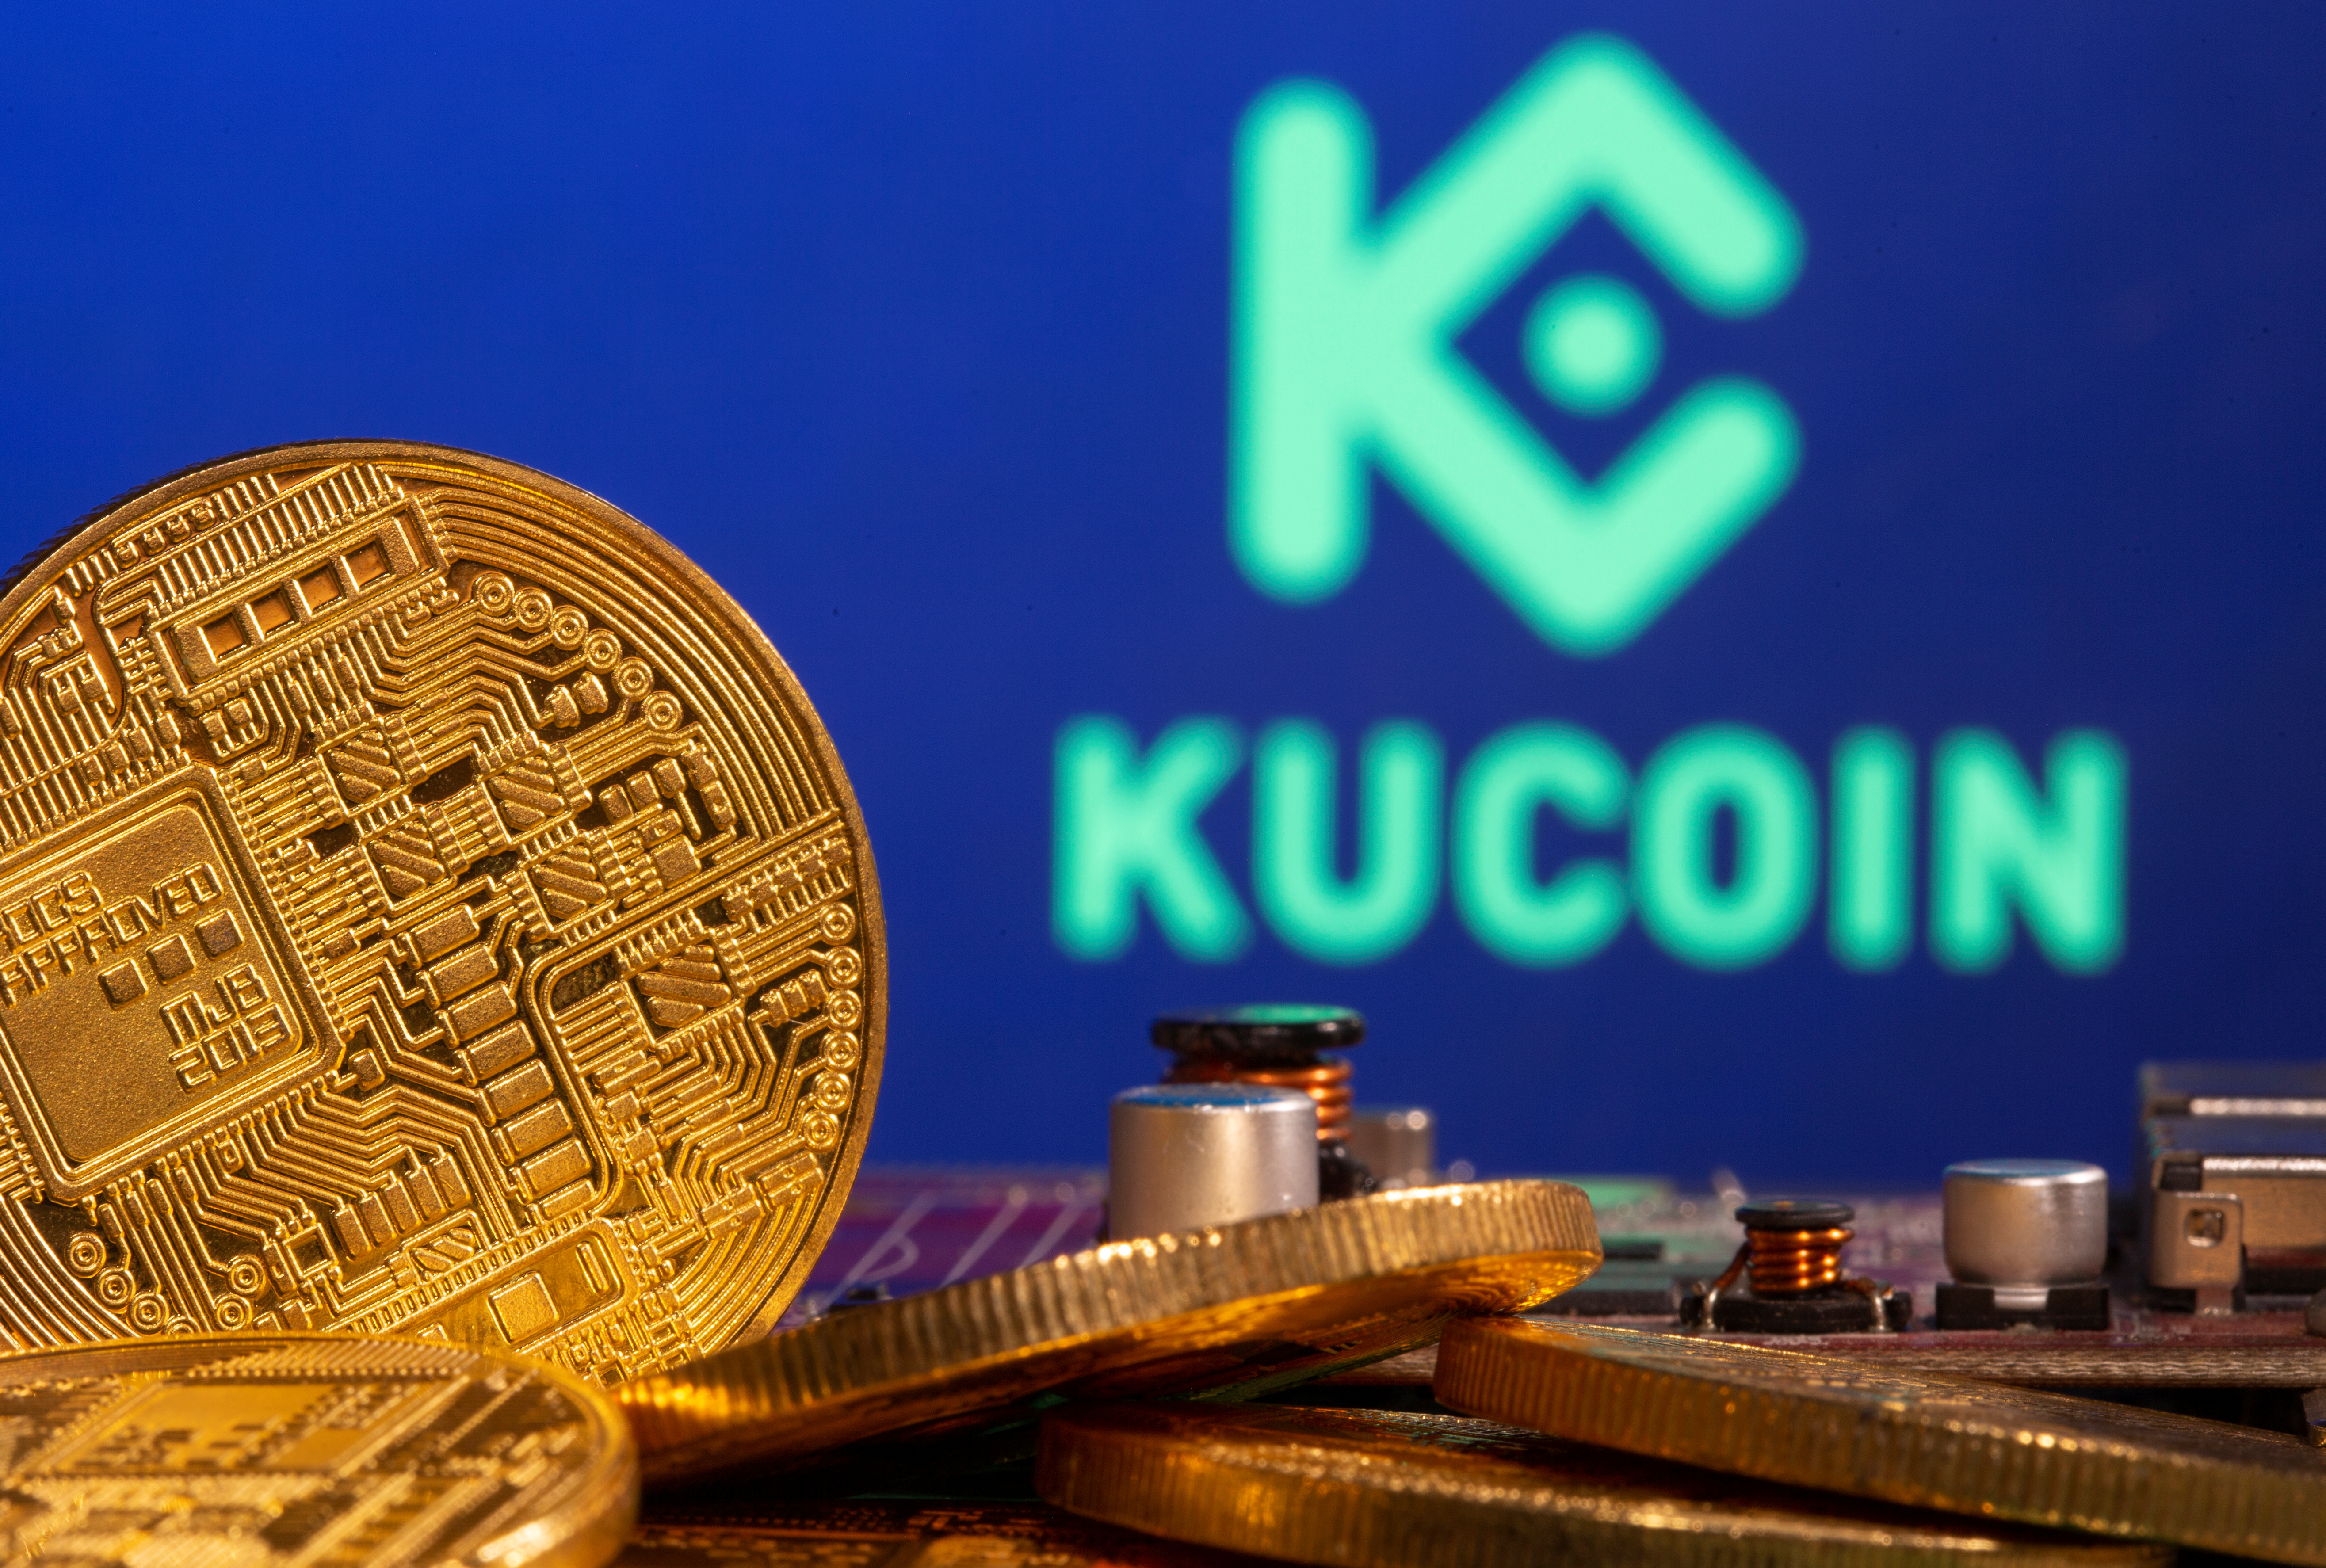 Representations of cryptocurrency is seen in front of a Kucoin logo in this illustration taken on February 9, 2021. REUTERS/Dado Ruvic/Illustration